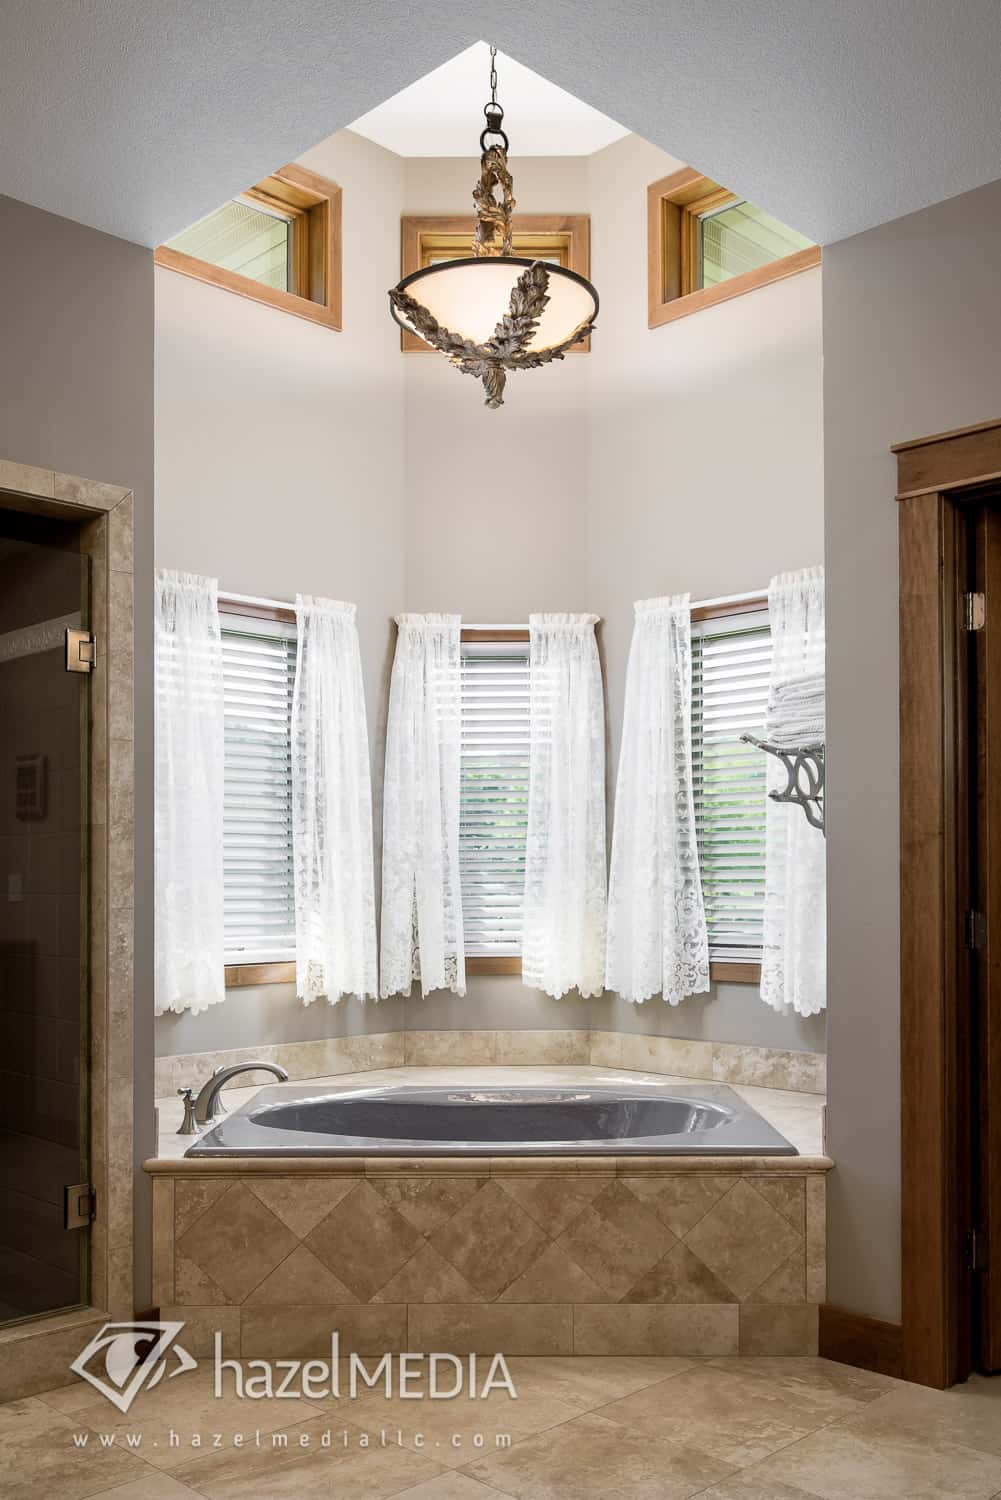 Residential_Bathroom_Bathtub